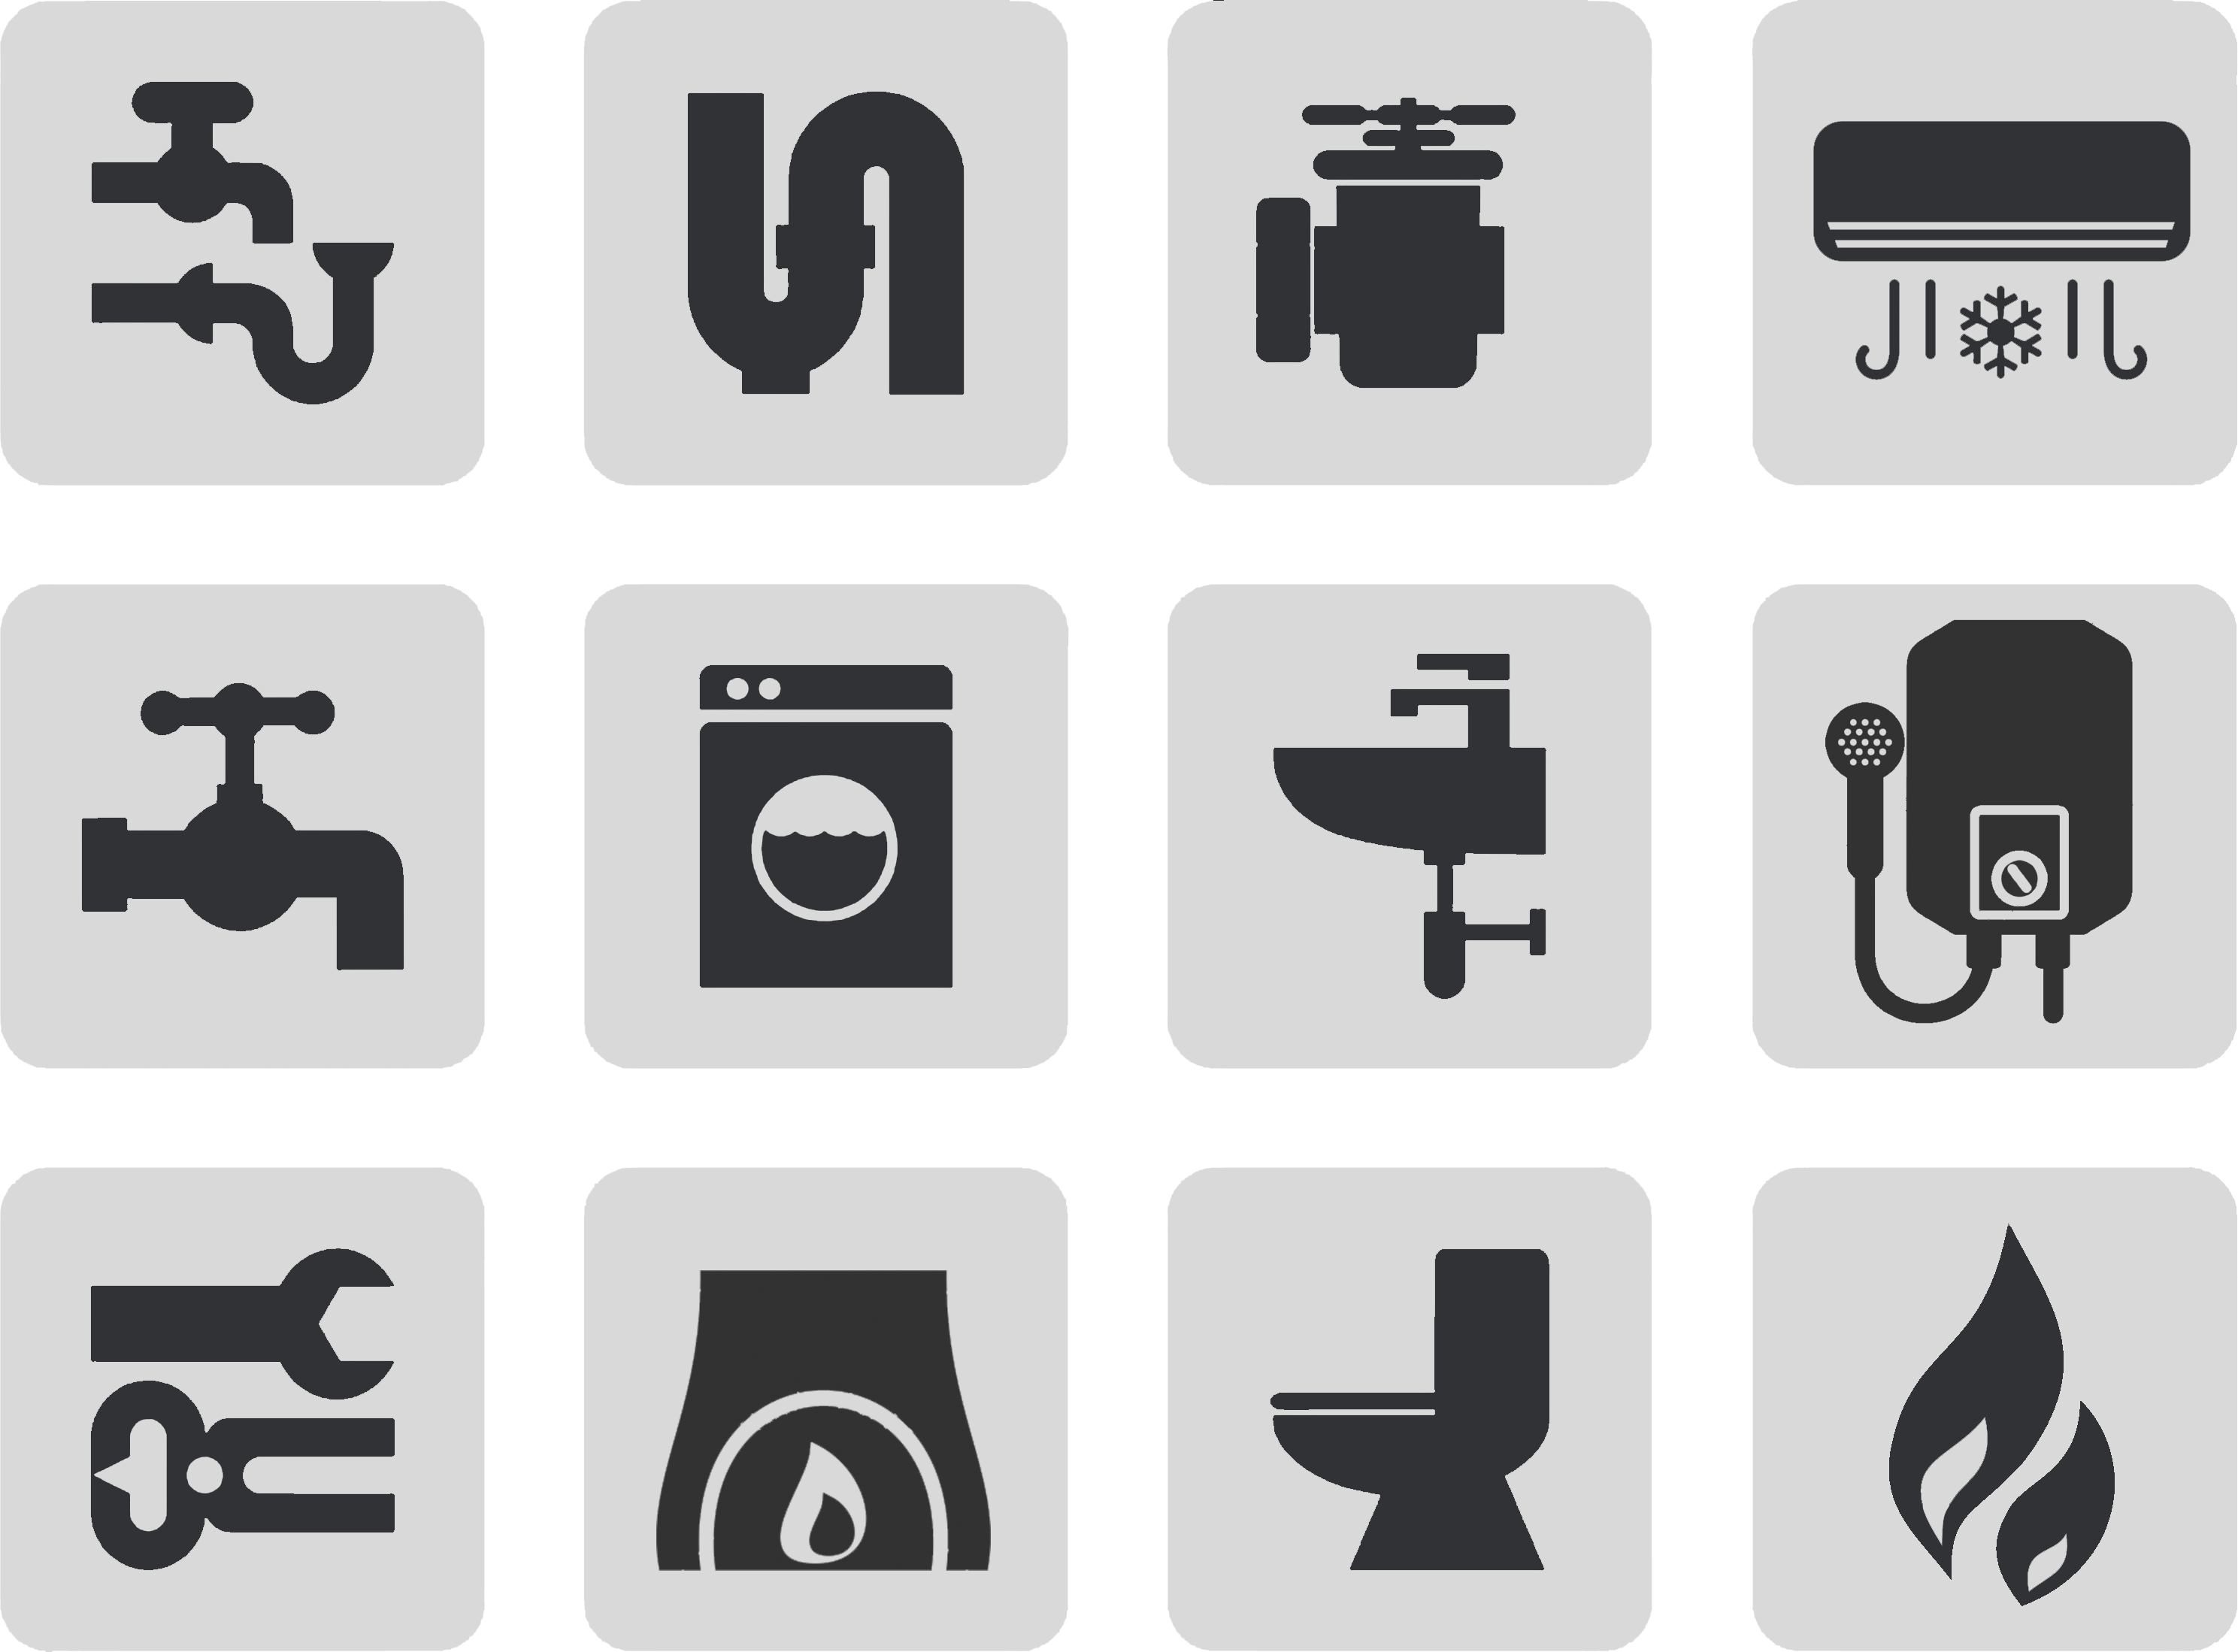 A grid of icons representing residential plumbing services